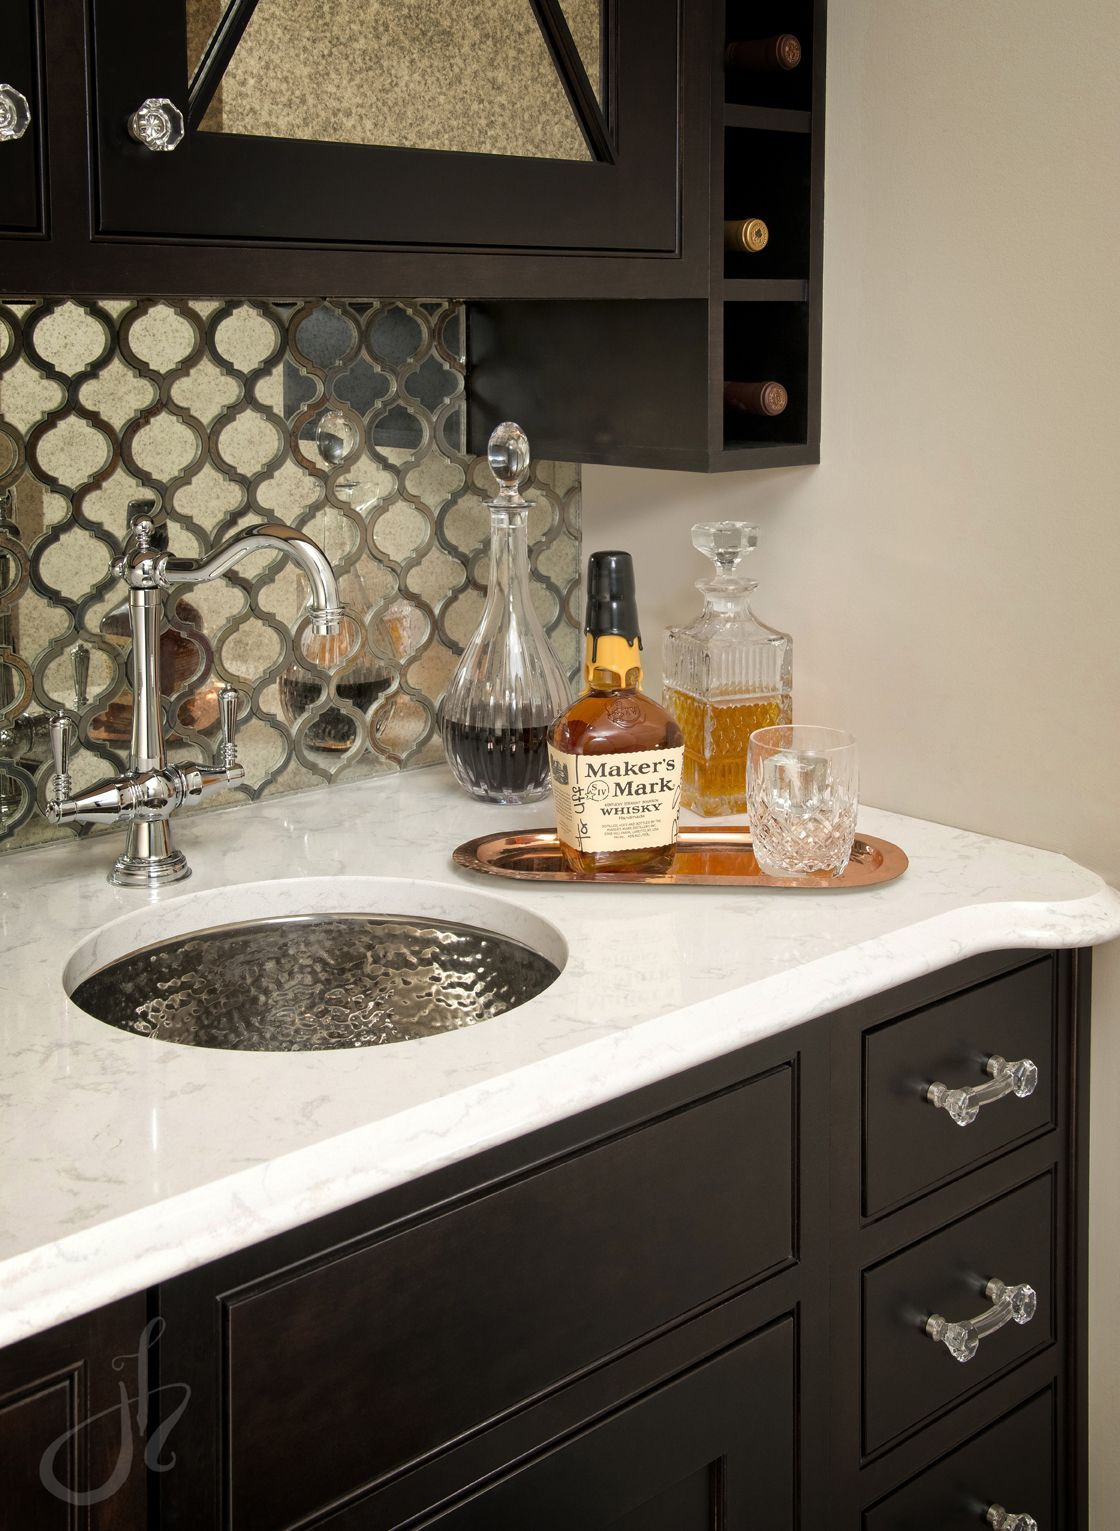 Wet Bar Mirrored Backsplash Antique Mirror Tile Cambria Quartz